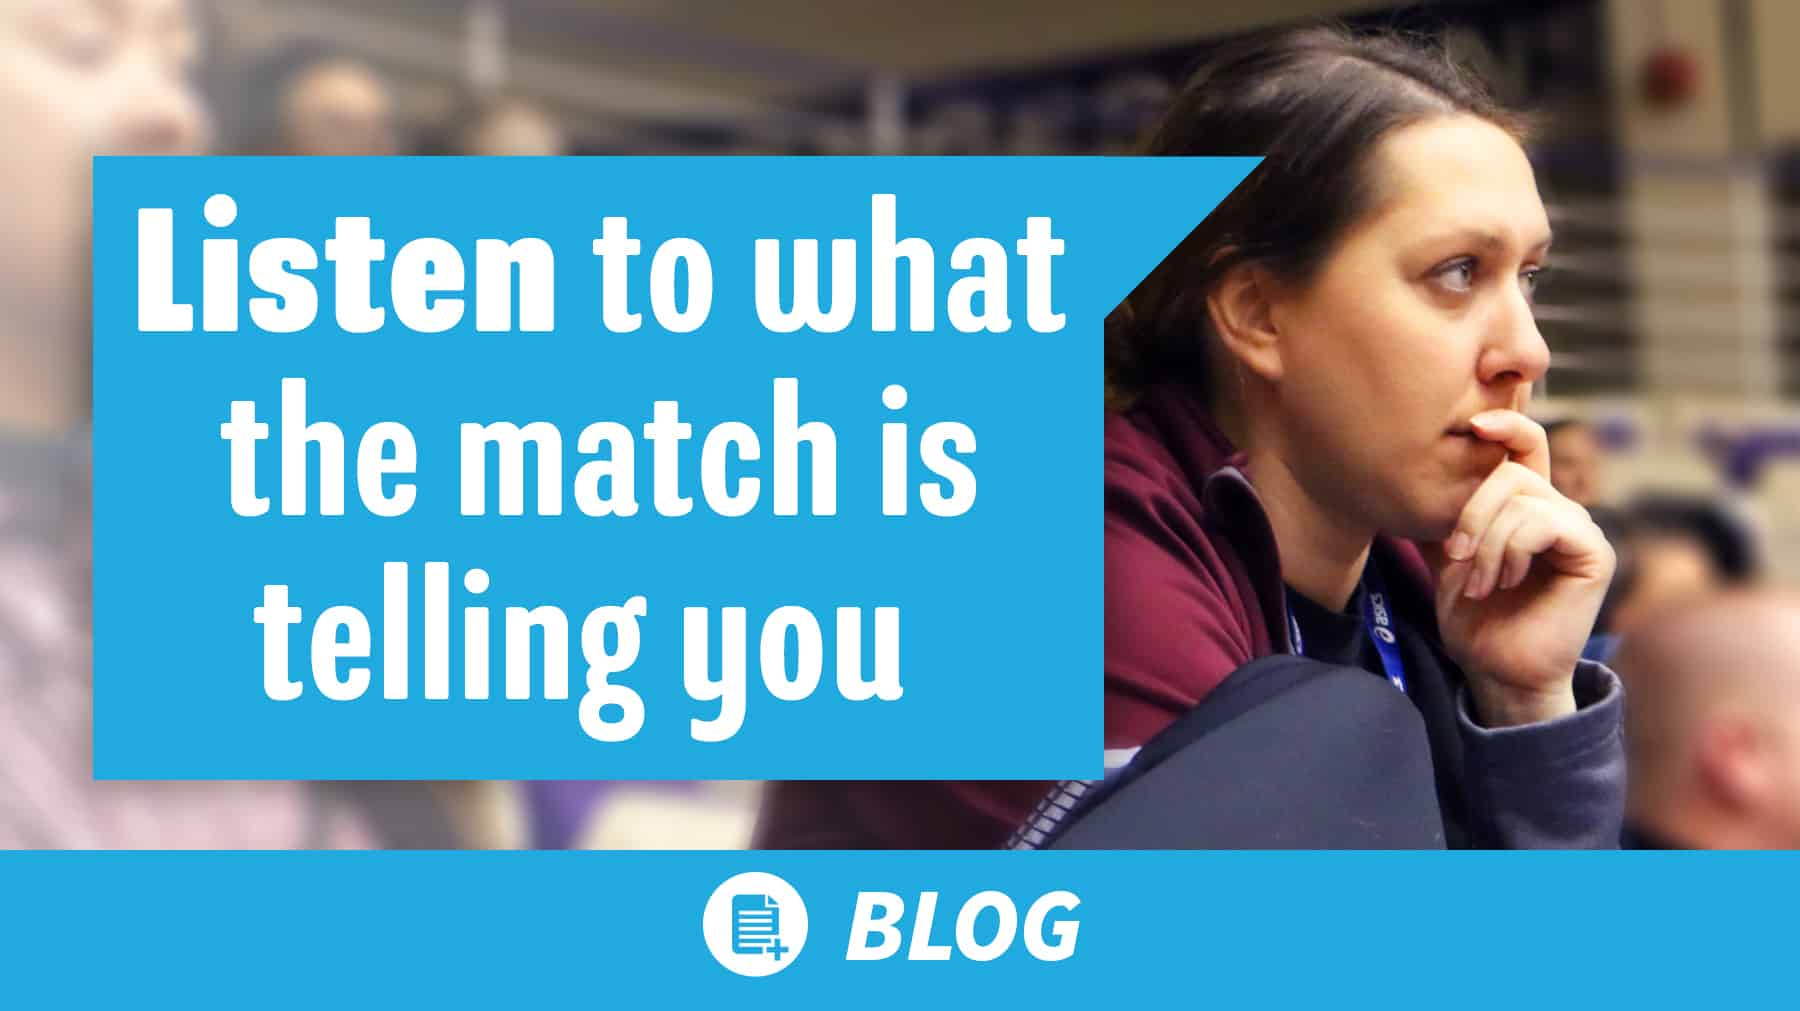 Listen to what the match is telling you